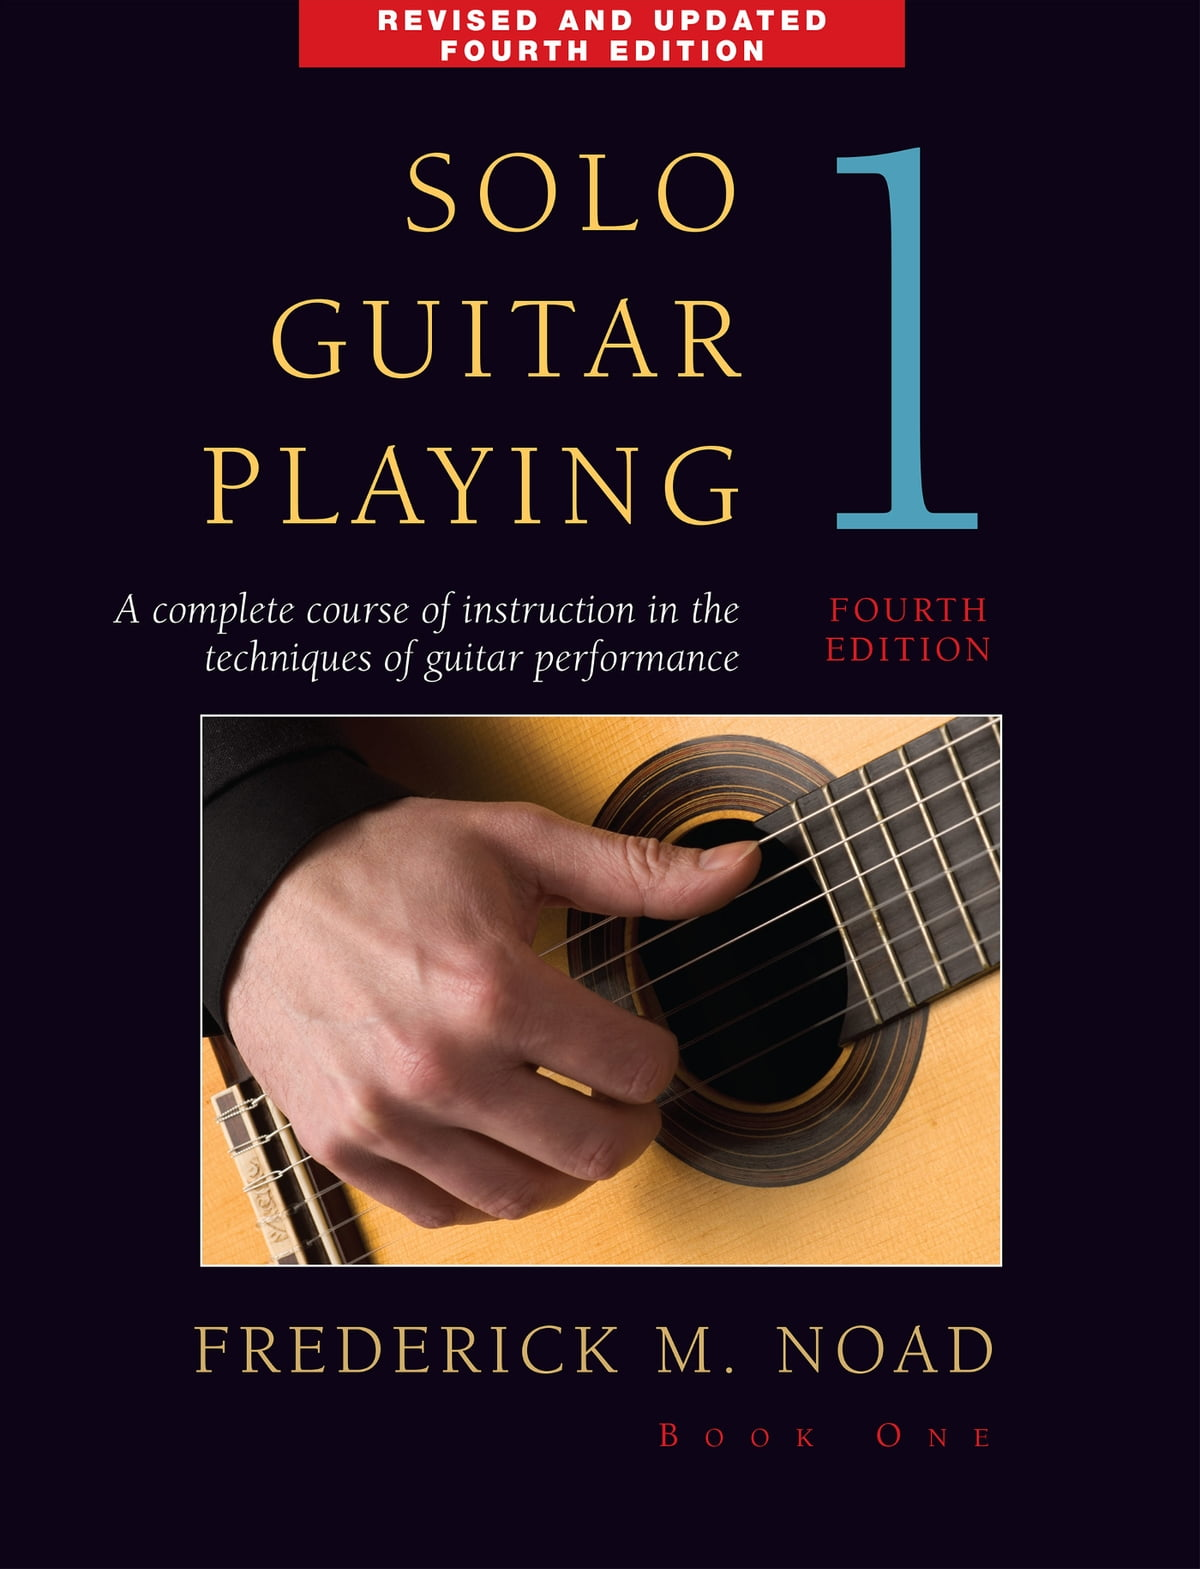 frederick noad solo guitar playing book 1 free download